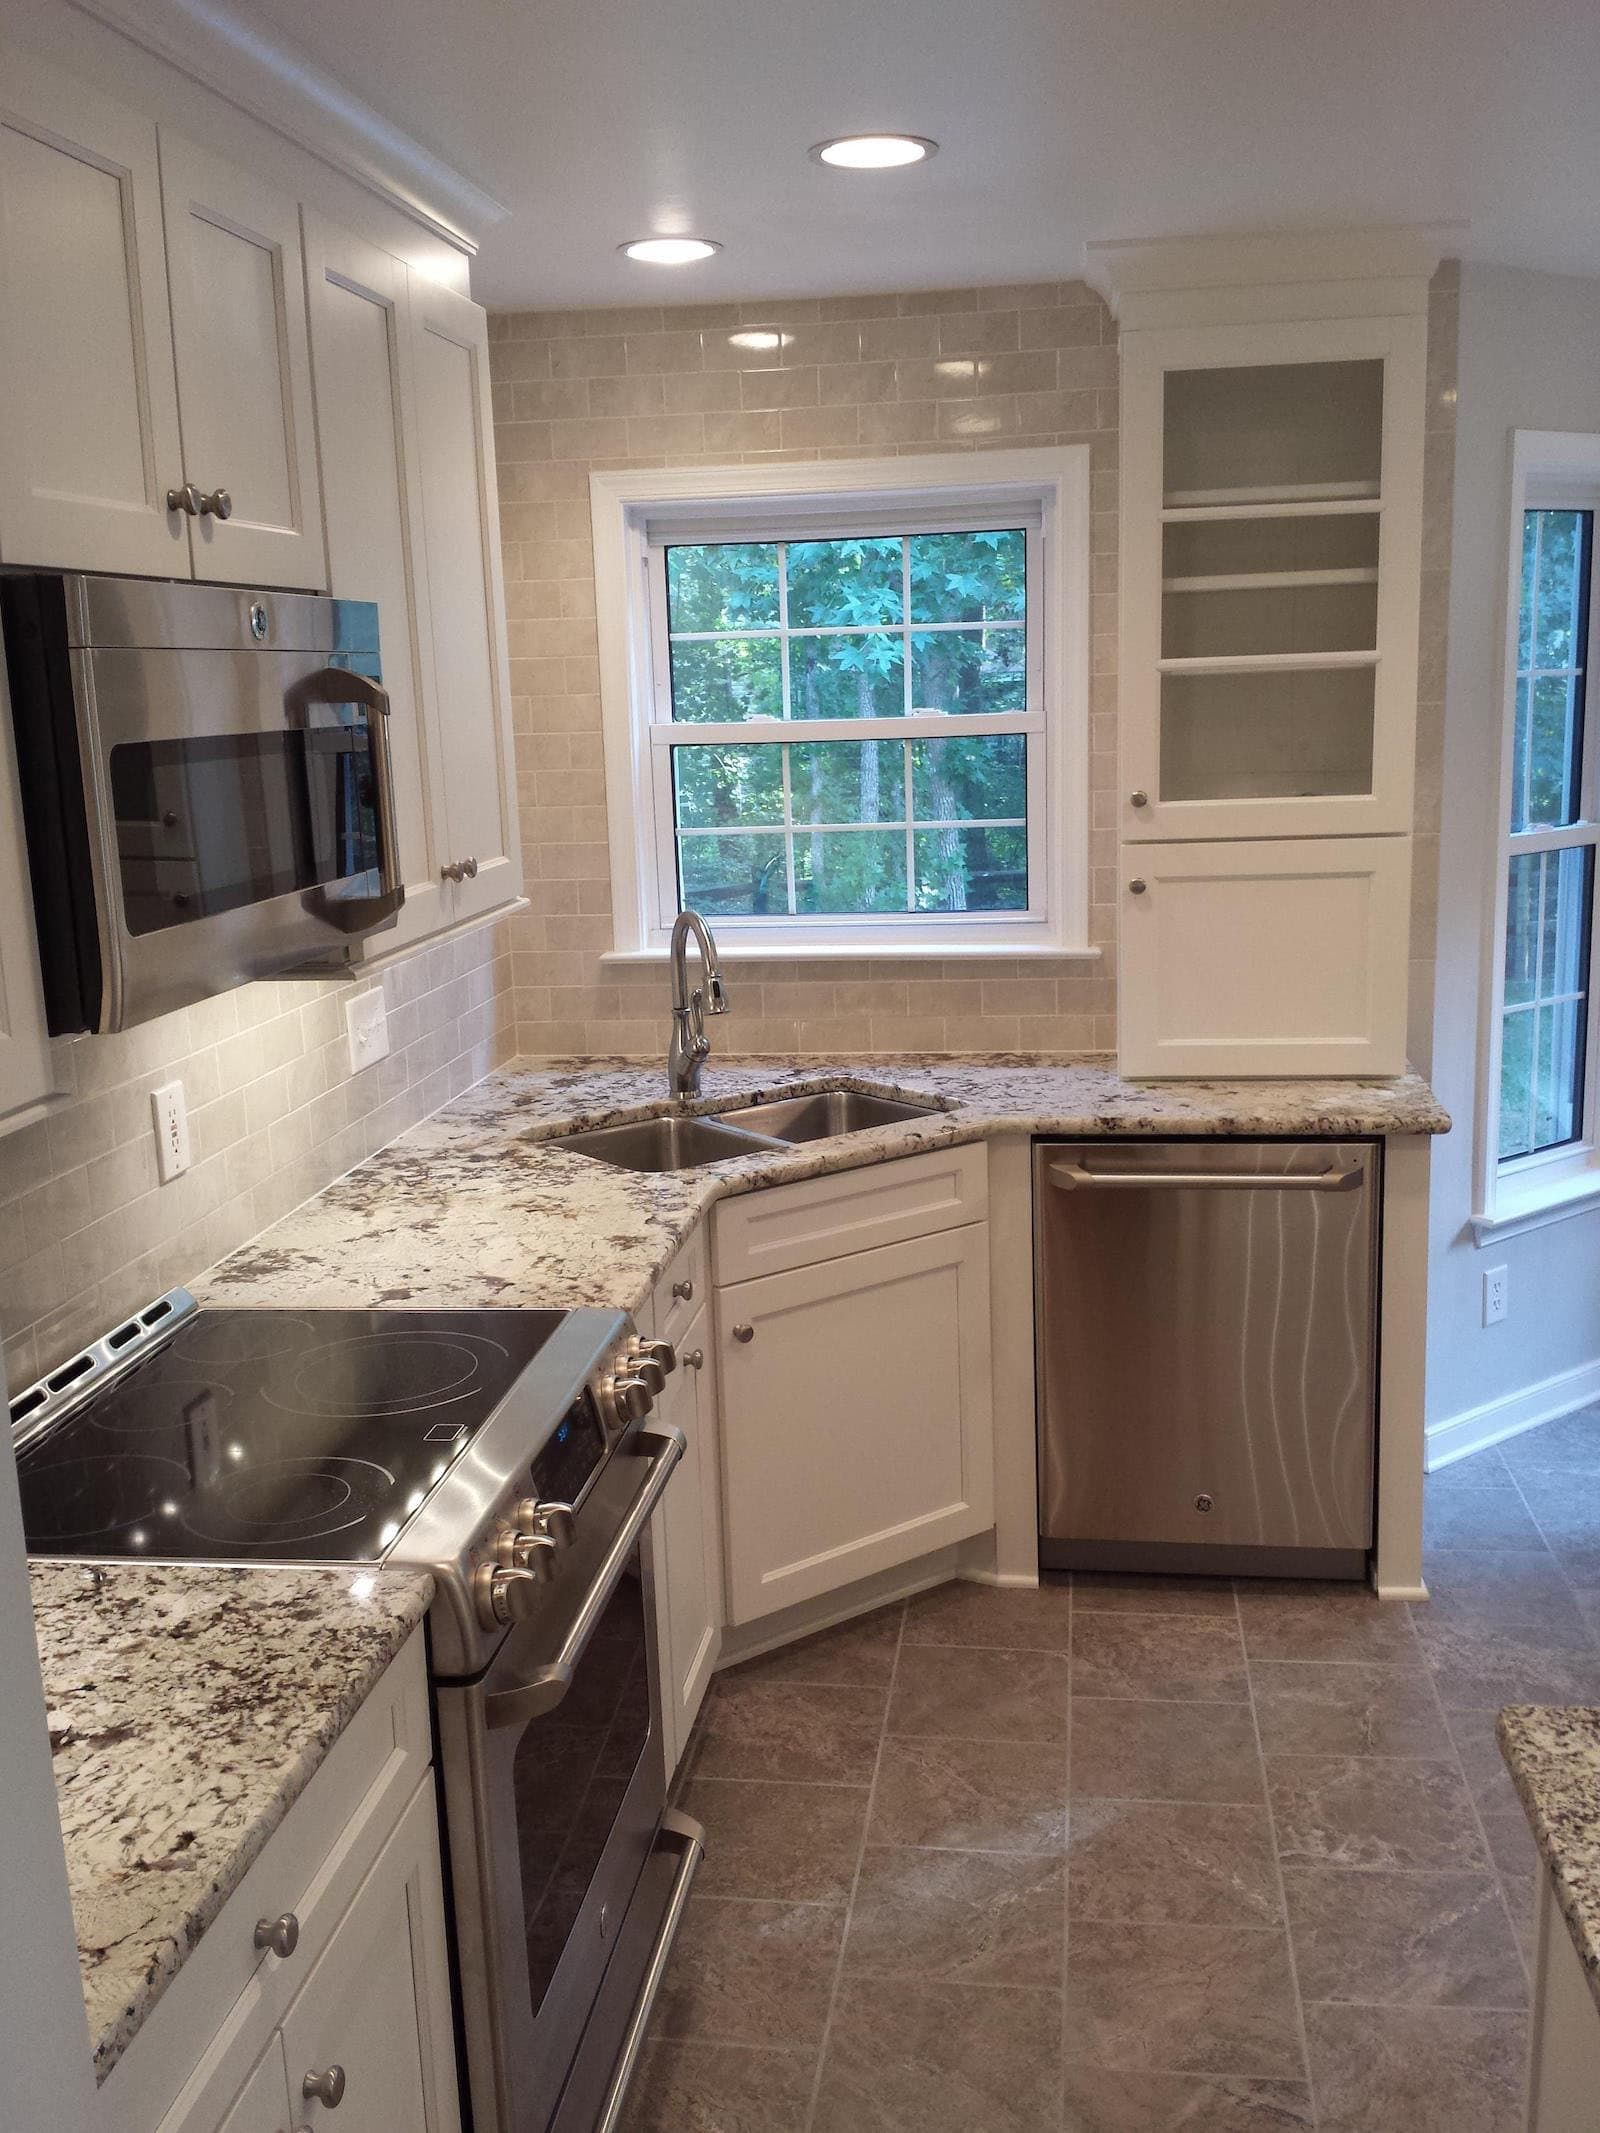 Small U Shaped Kitchen Ideas Pro Cons Tips On Designing U Shaped Kitchen Withbreakfastbar G Kitchen Designs Layout Kitchen Remodel Design Kitchen Layout